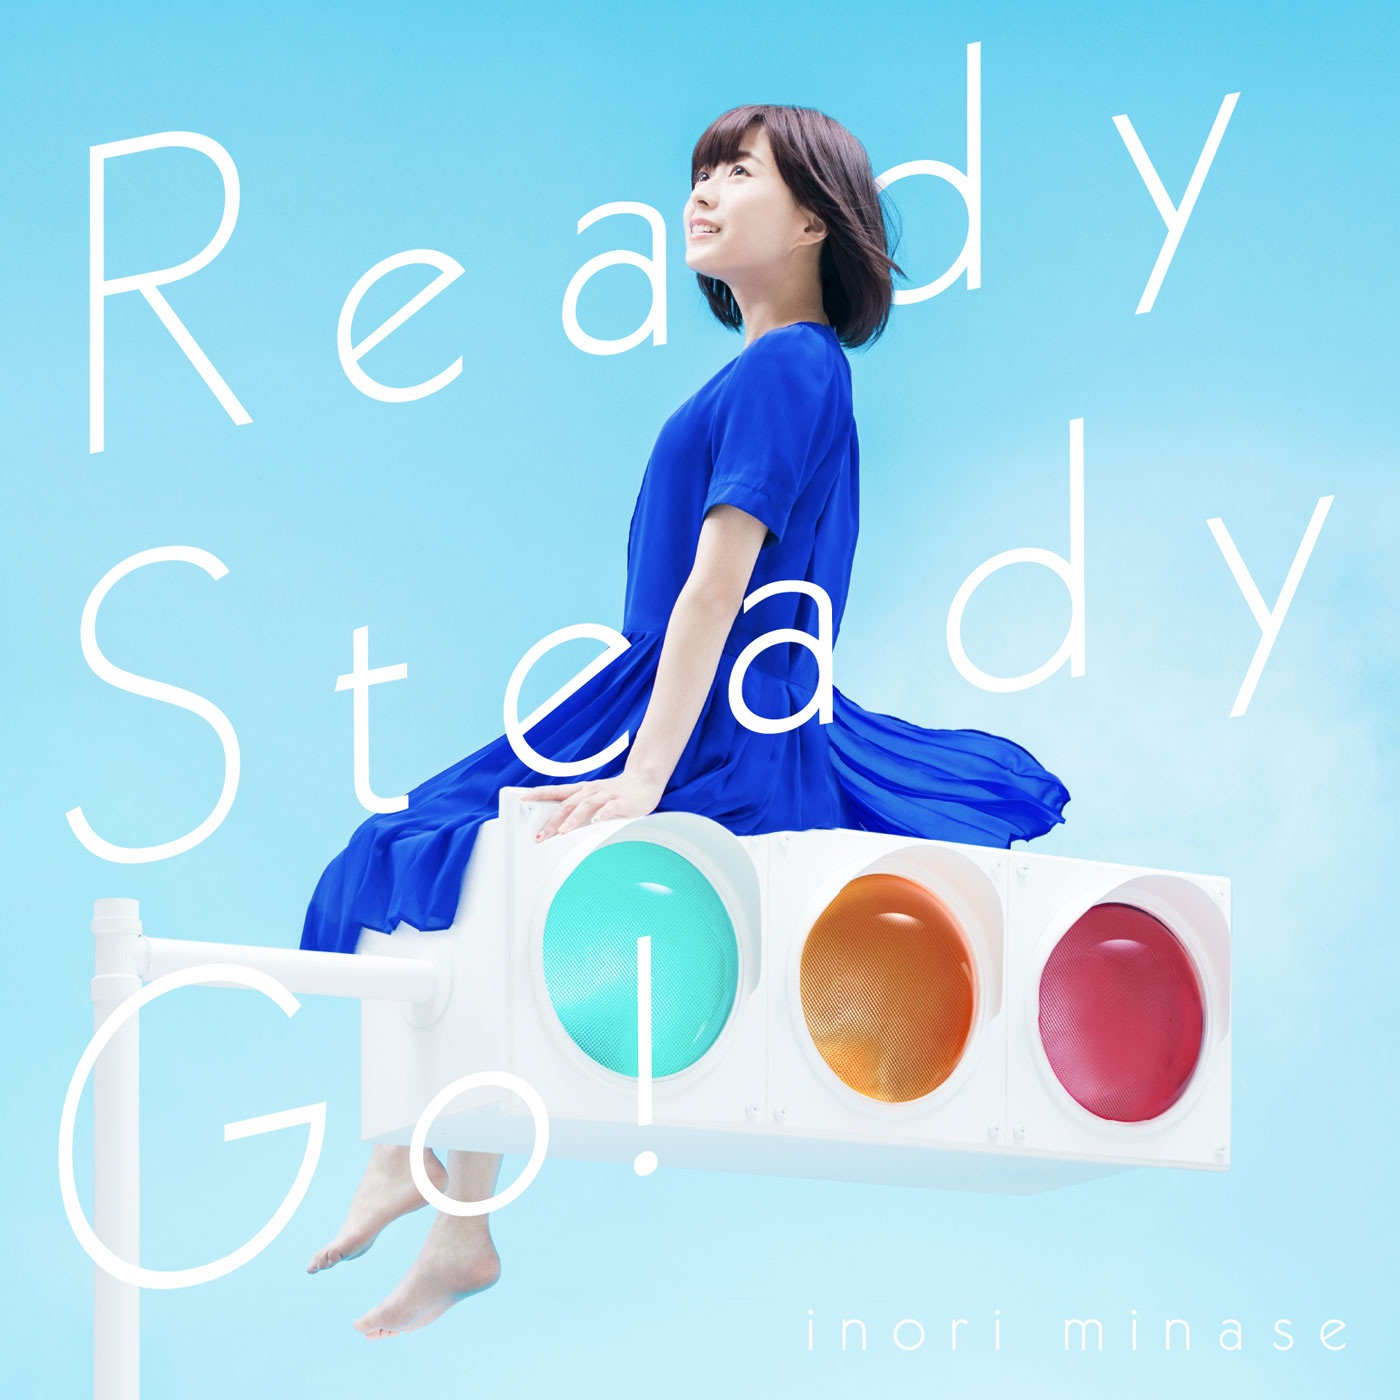 Ready Steady Go! - Single